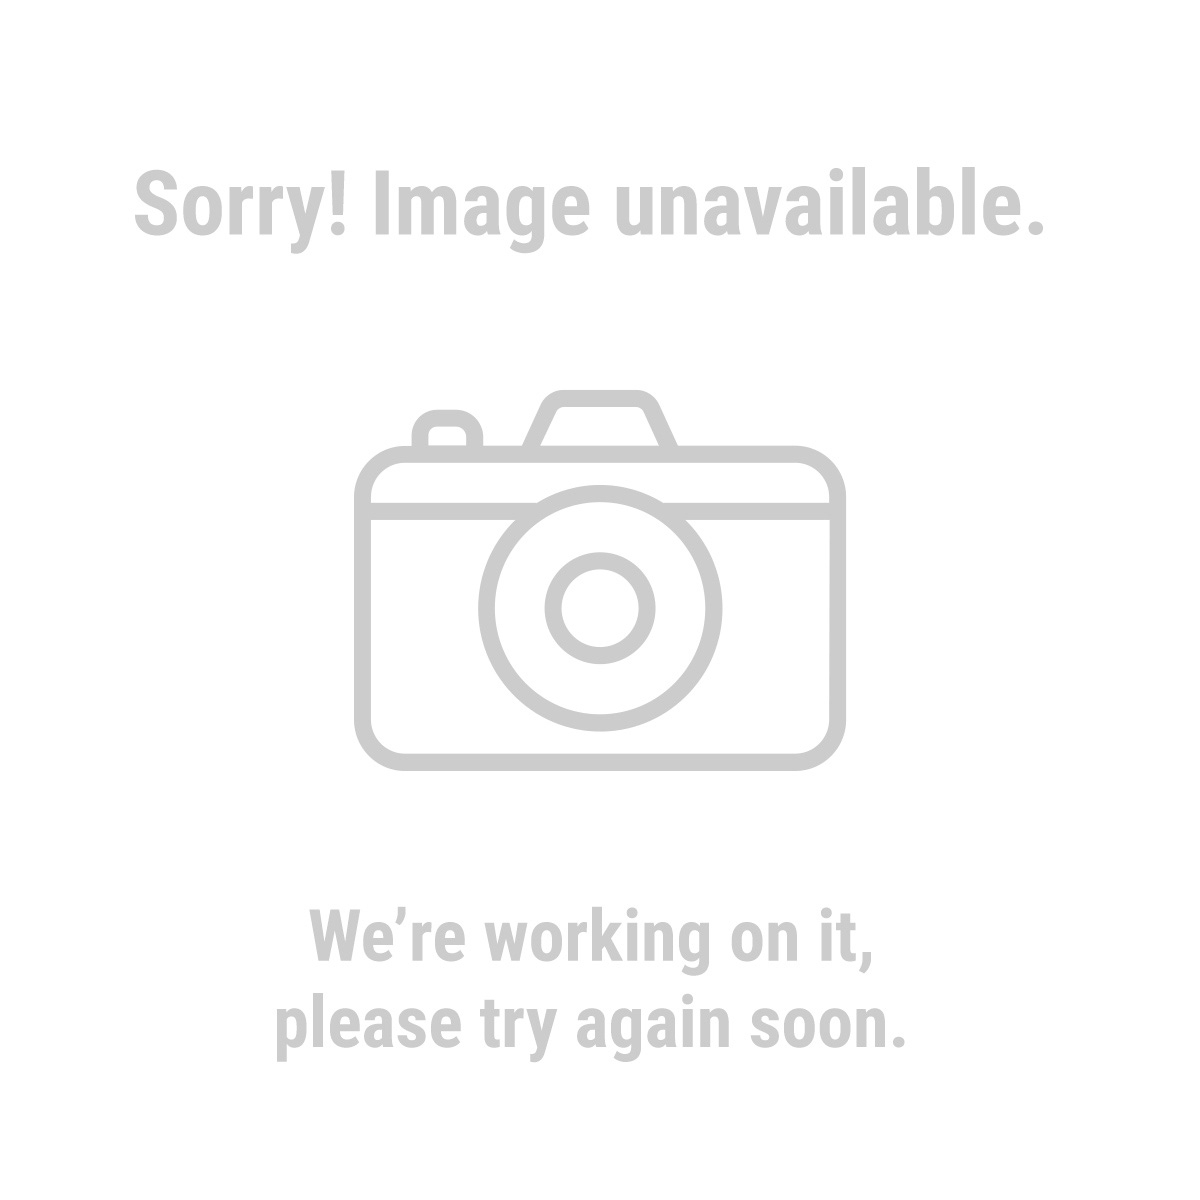 Cen-Tech 93051 Clamping Dial Indicator